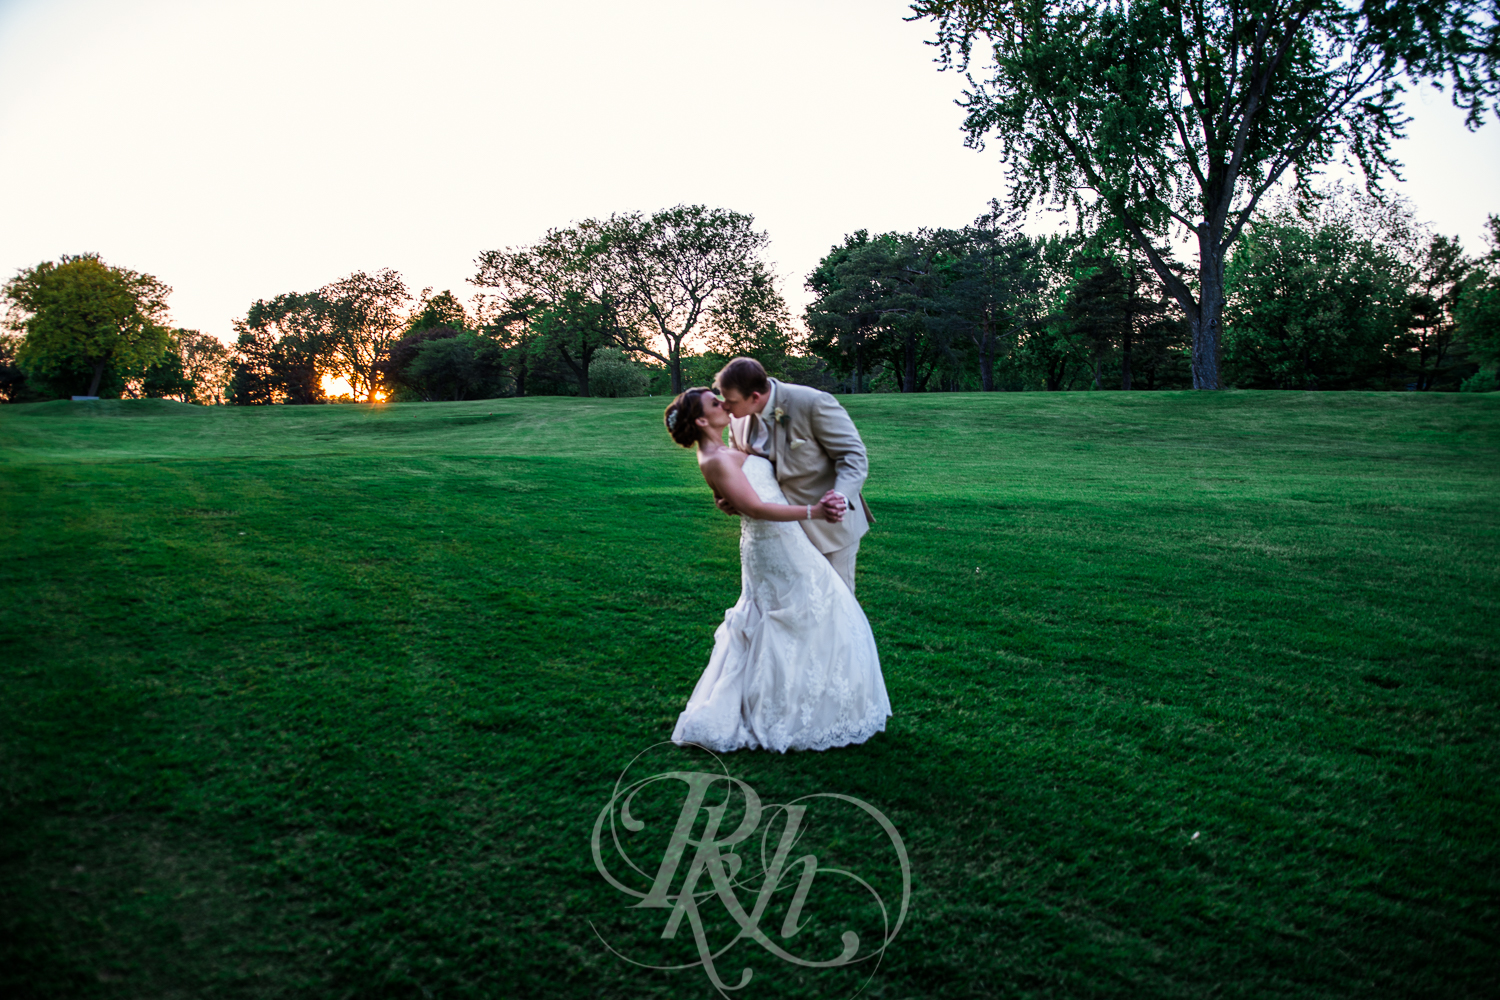 Blog - Whitney & Brent - Minnesota Wedding Photographer - RKH Images - Blog 4-5.jpg